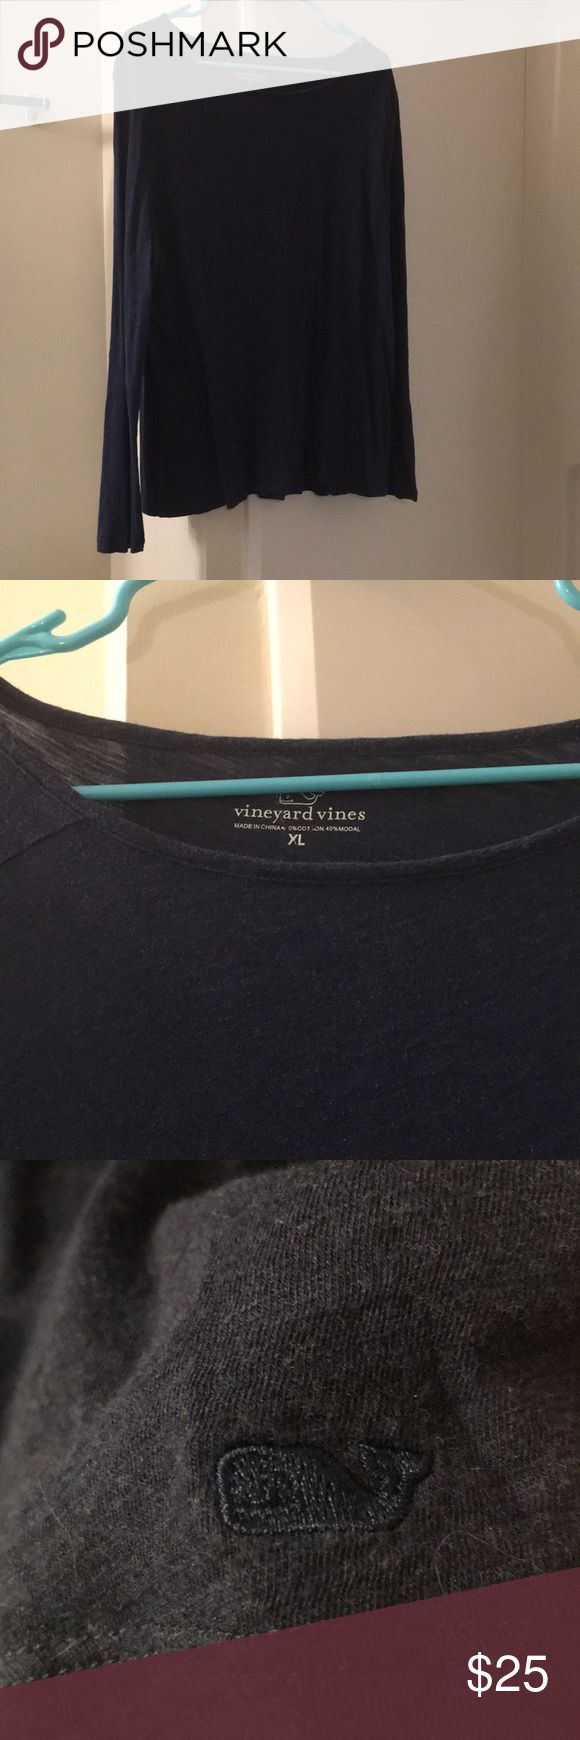 """Vineyard Vines women boatneck casual top Gently Used Condition. Great neutral navy color. Flattering boatneck top and relaxed fit. 60%cotton/40%modal.  underarm to underarm= approx. 20"""" Shoulder to bottom hem= approx. 27"""" Pet friendly home but stored in a closed closet. Vineyard Vines Tops Tees - Long Sleeve"""